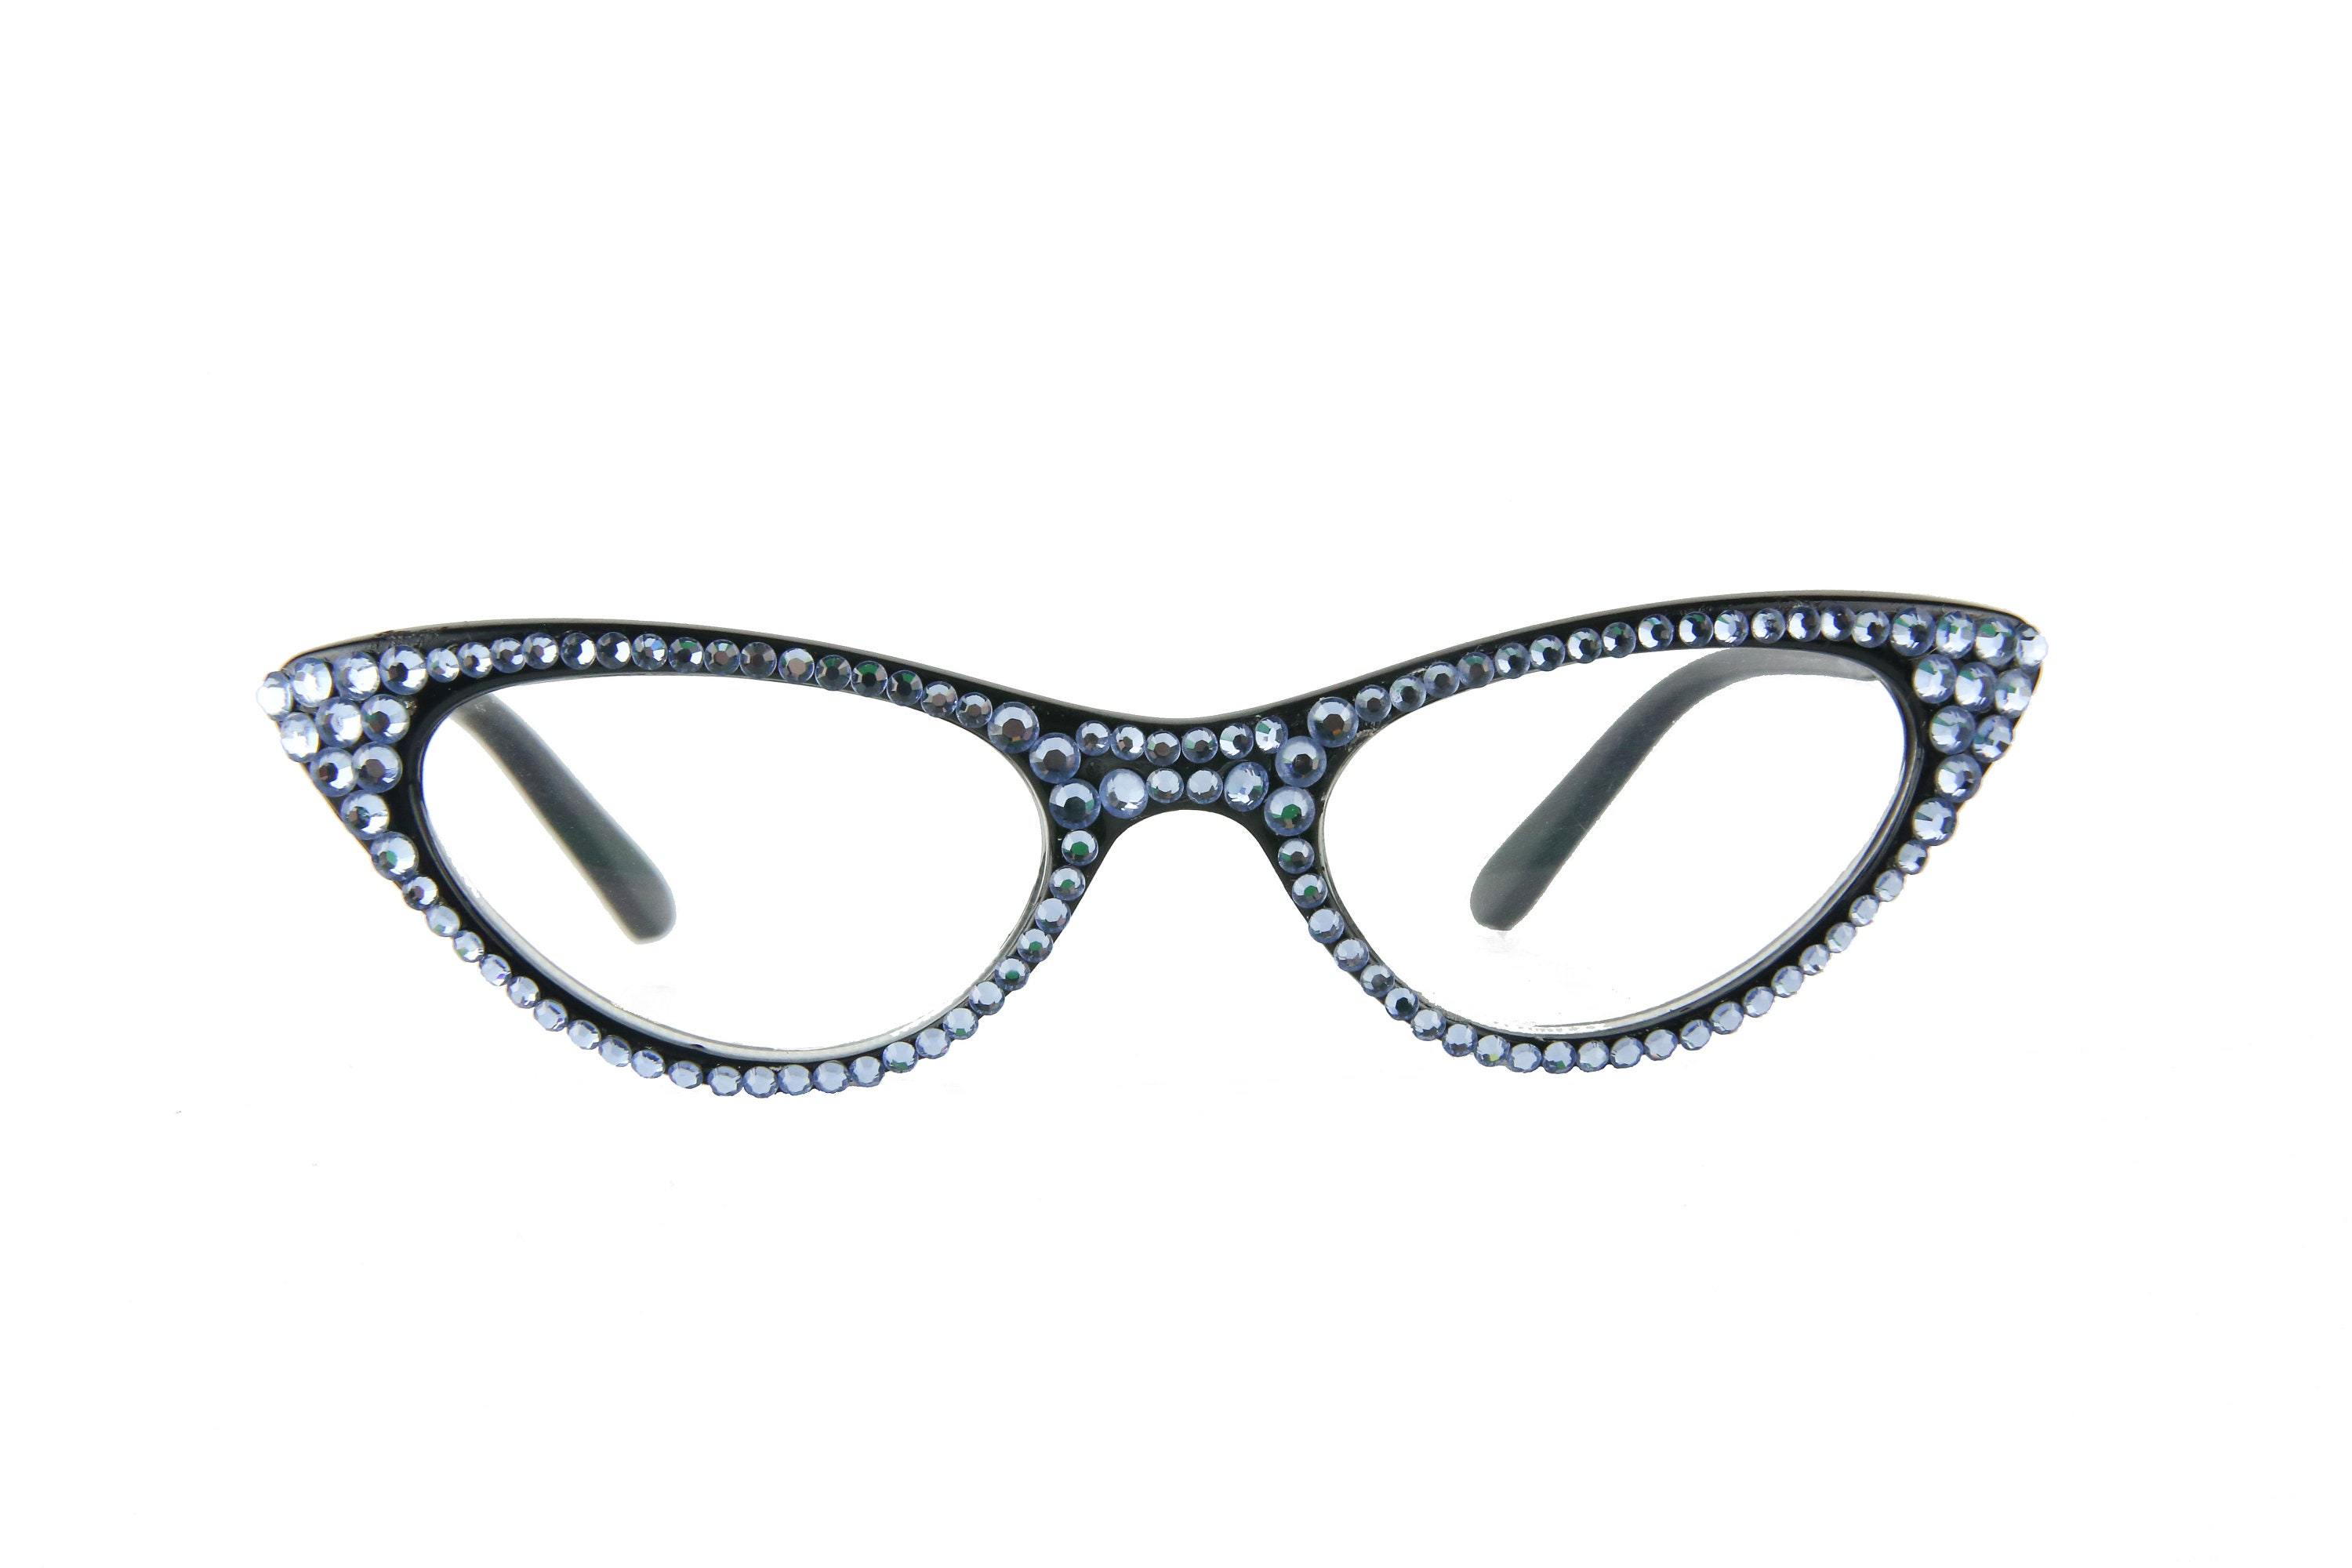 113b8531df4e Blue Fashion Vintage Cat Eye Reading Glasses Made with Swarovski Crystals.  gallery photo gallery photo